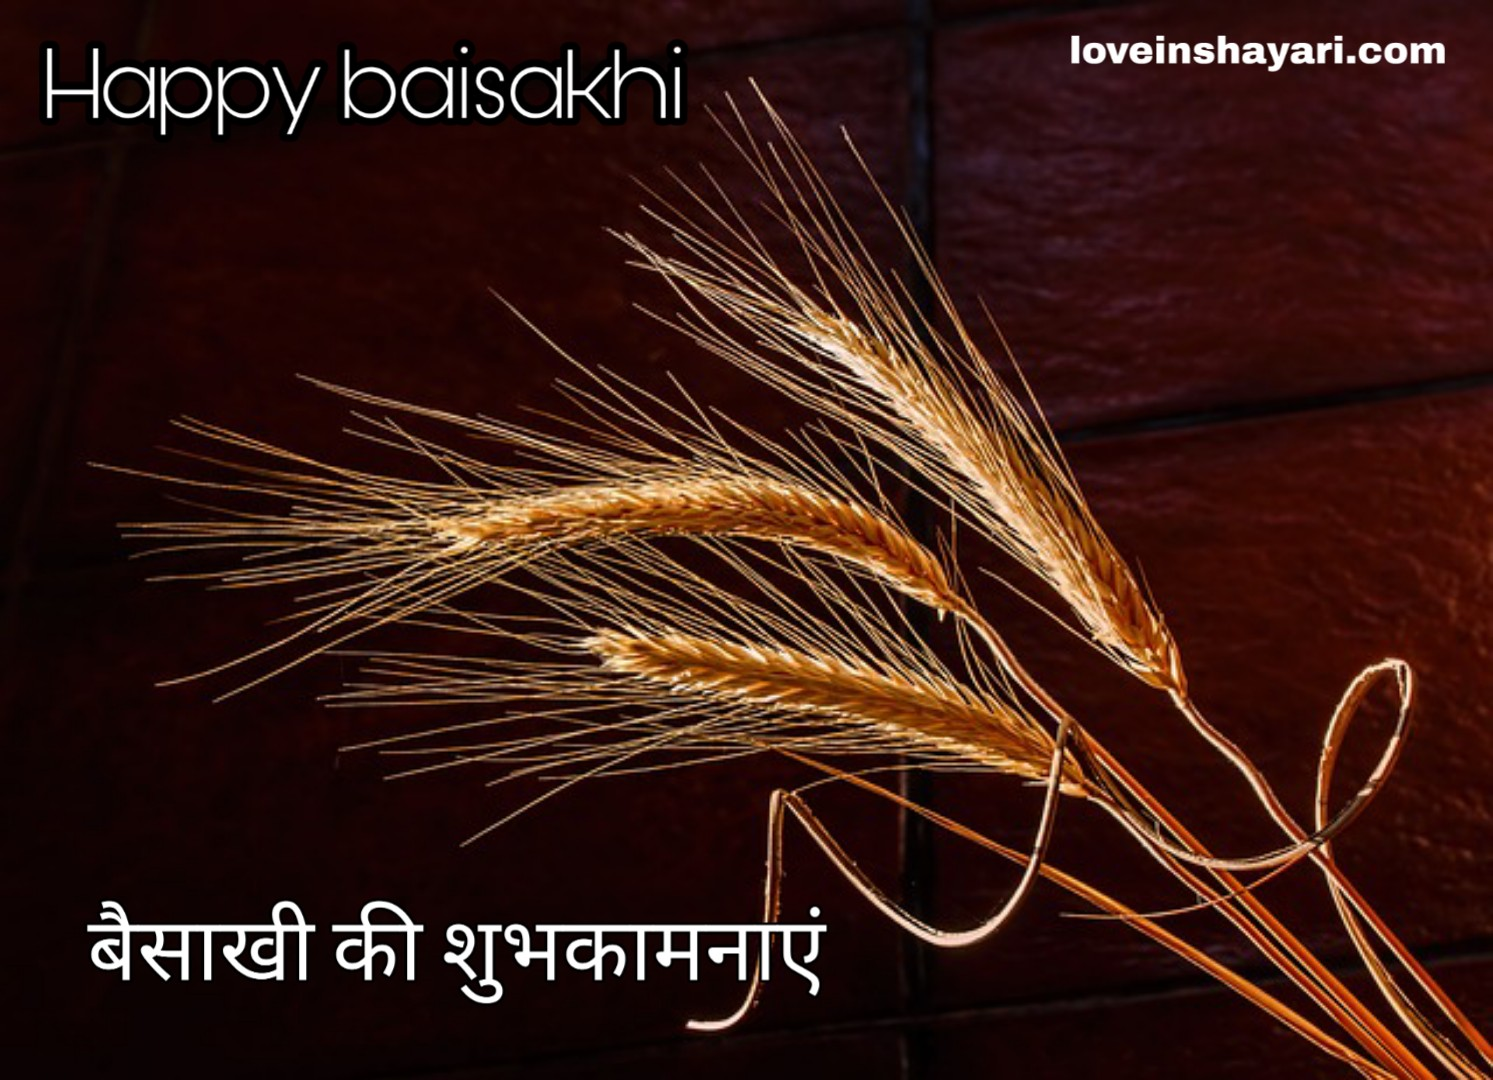 Photo of Baisakhi status whatsapp status 2020